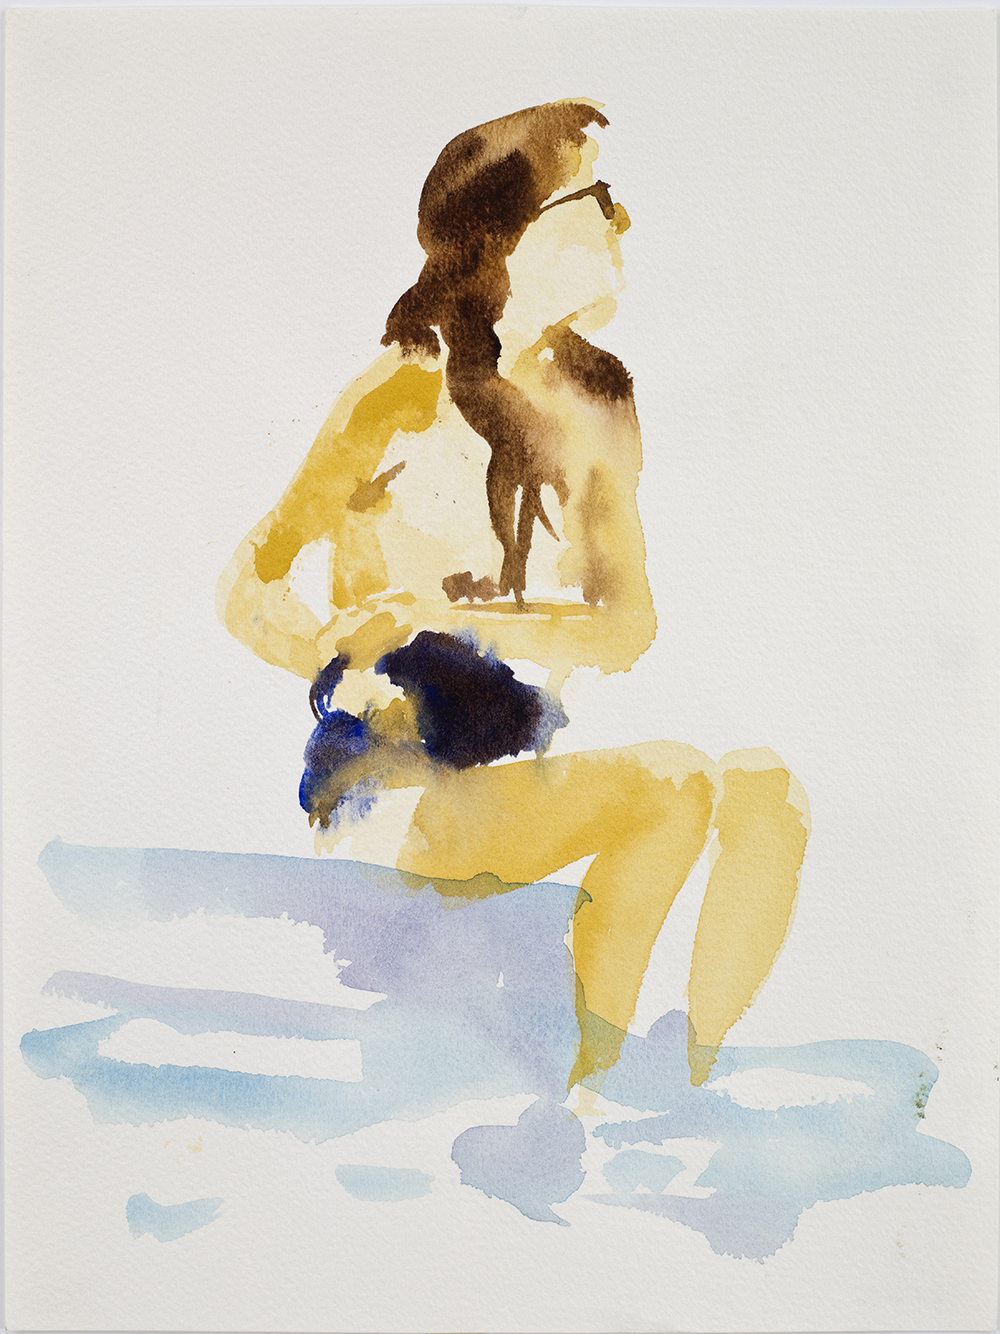 """Untitled, 1989, watercolor on paper, 12.5"""" x 9.5"""""""